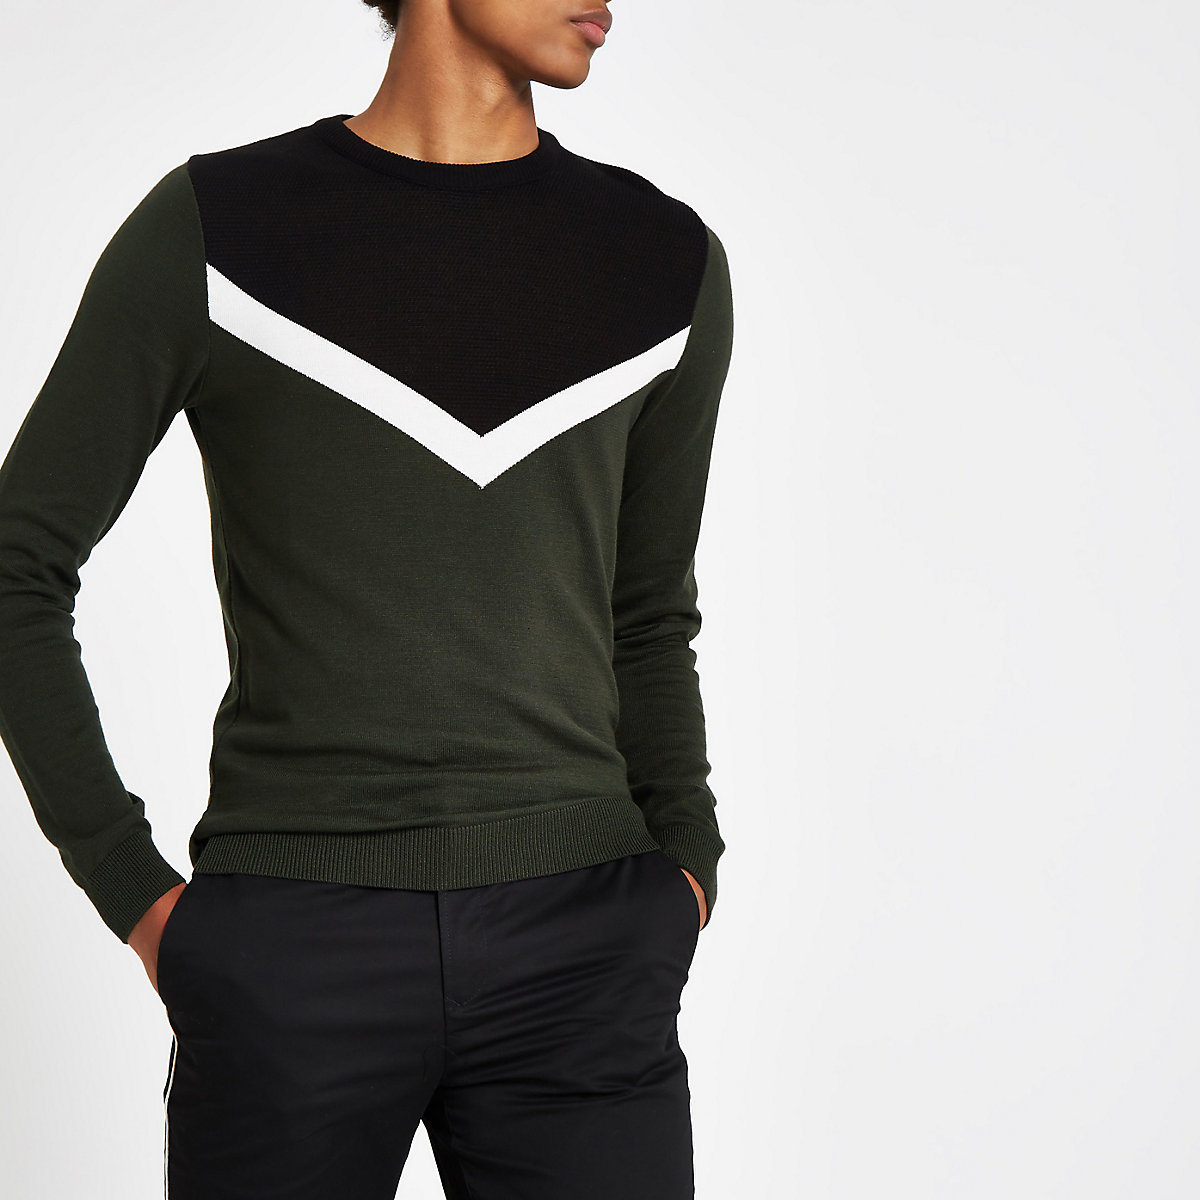 Green contrast crew neck sweater